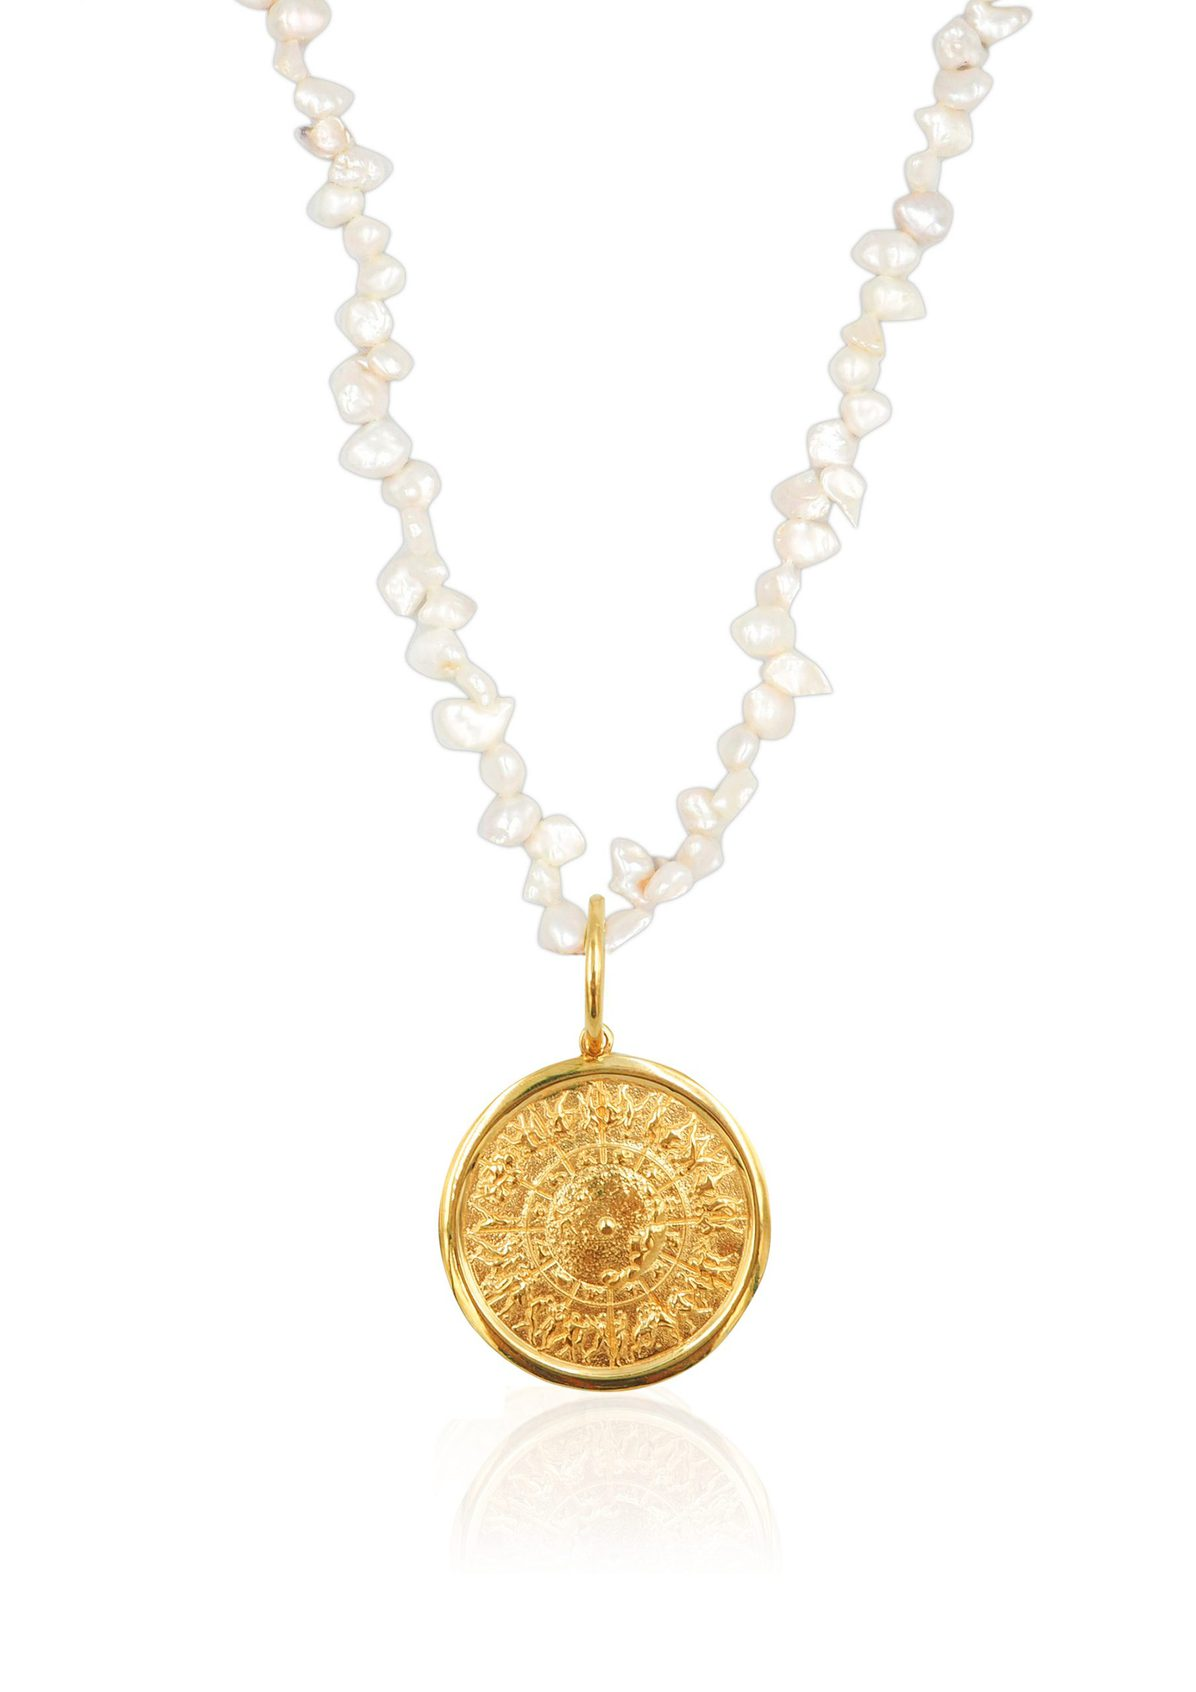 SHIELD OF ACHILLES PEARL NECKLACE